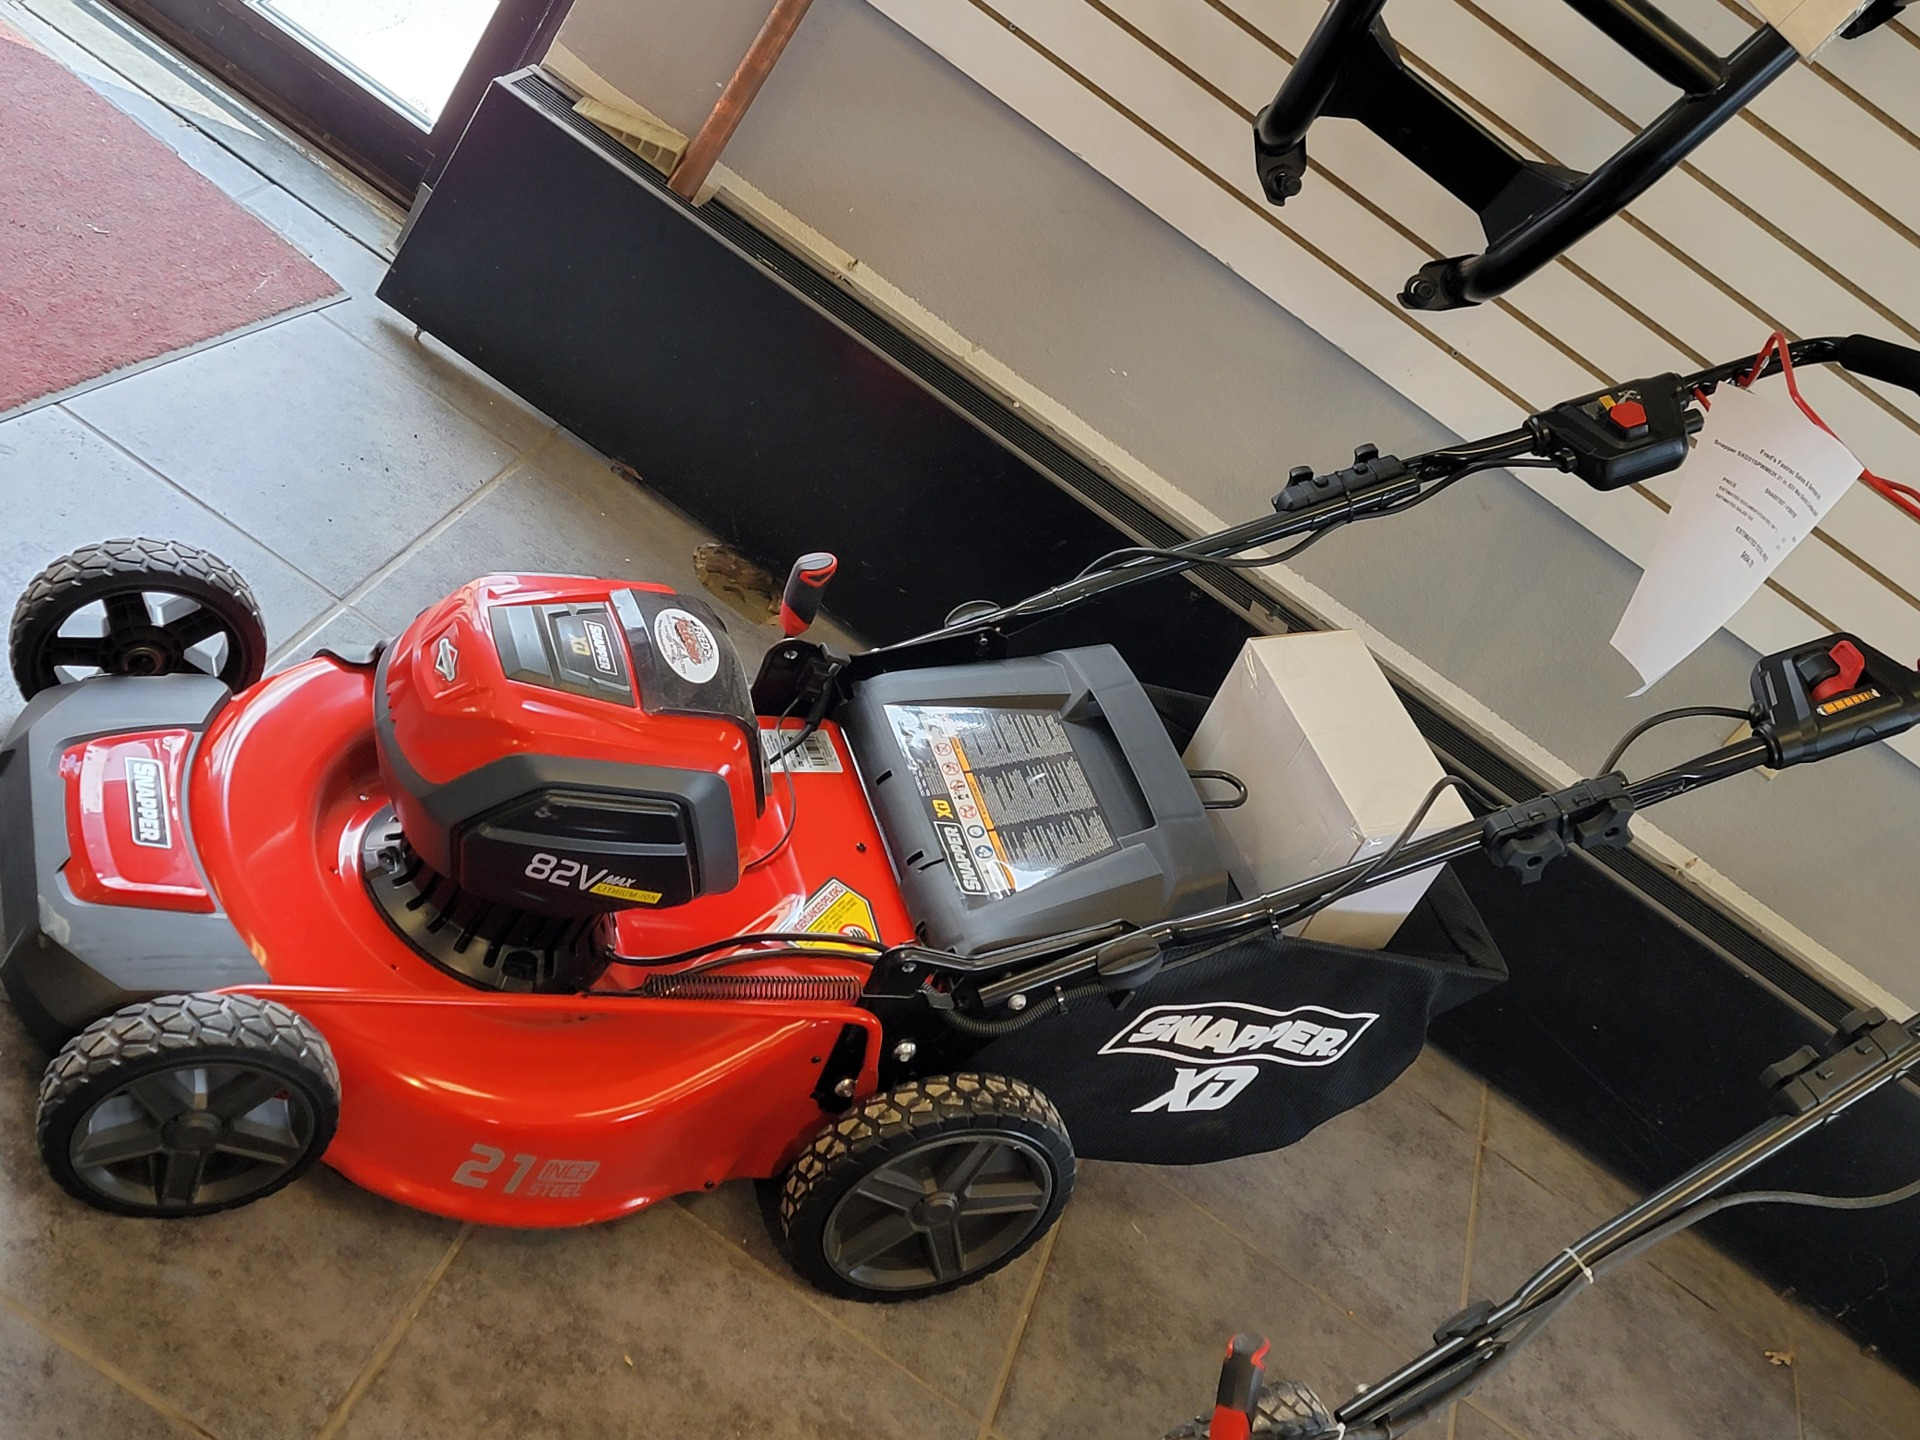 Snapper SXD21SPWM82K 21 in. 82V Max Electric Cordless Self-Propelled in Fond Du Lac, Wisconsin - Photo 1